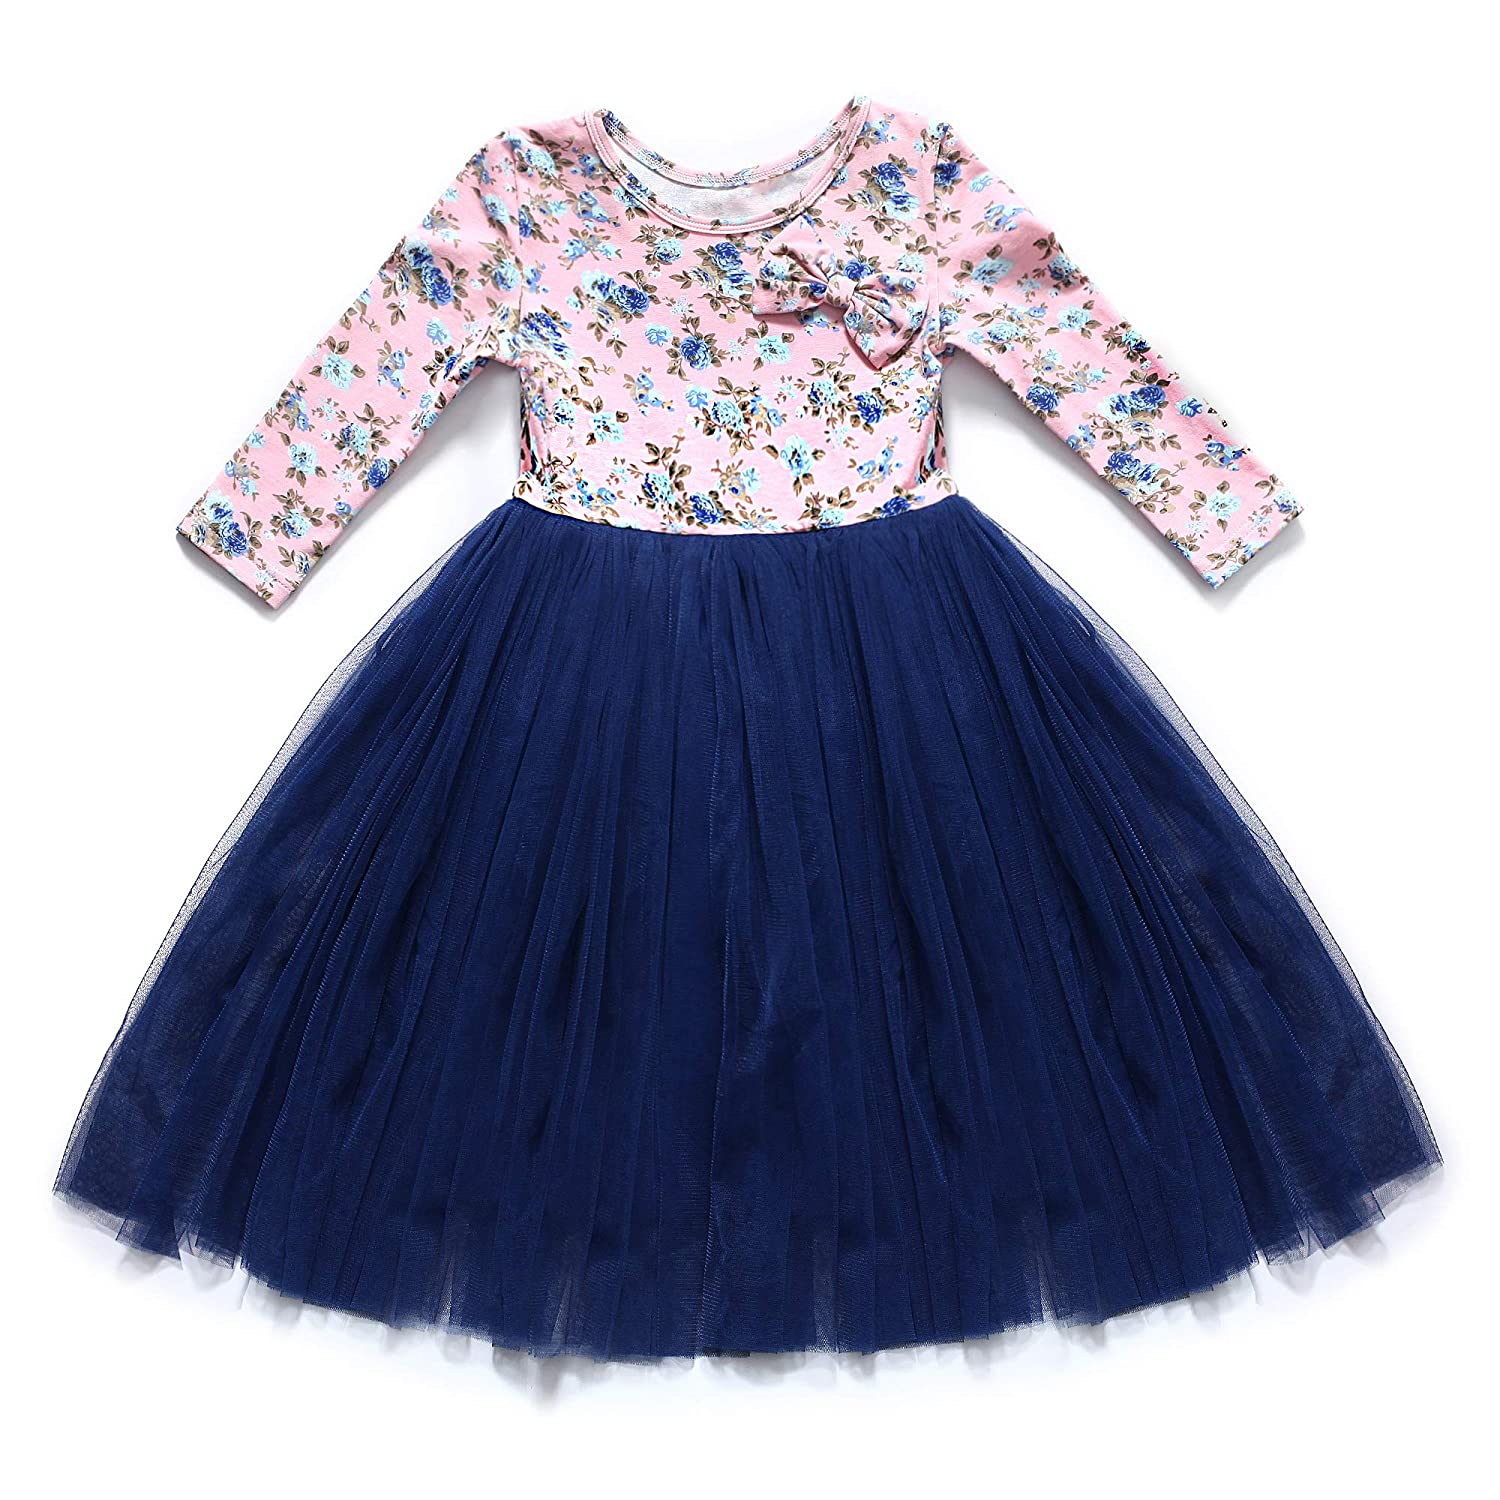 c9bb81789 Autumn long sleeves vintage girls tulle dress. Floral knitted bodice+Tulle  skirt+cotton lining+cute bowknot. Size 1 fit 12 months-24 months; ...